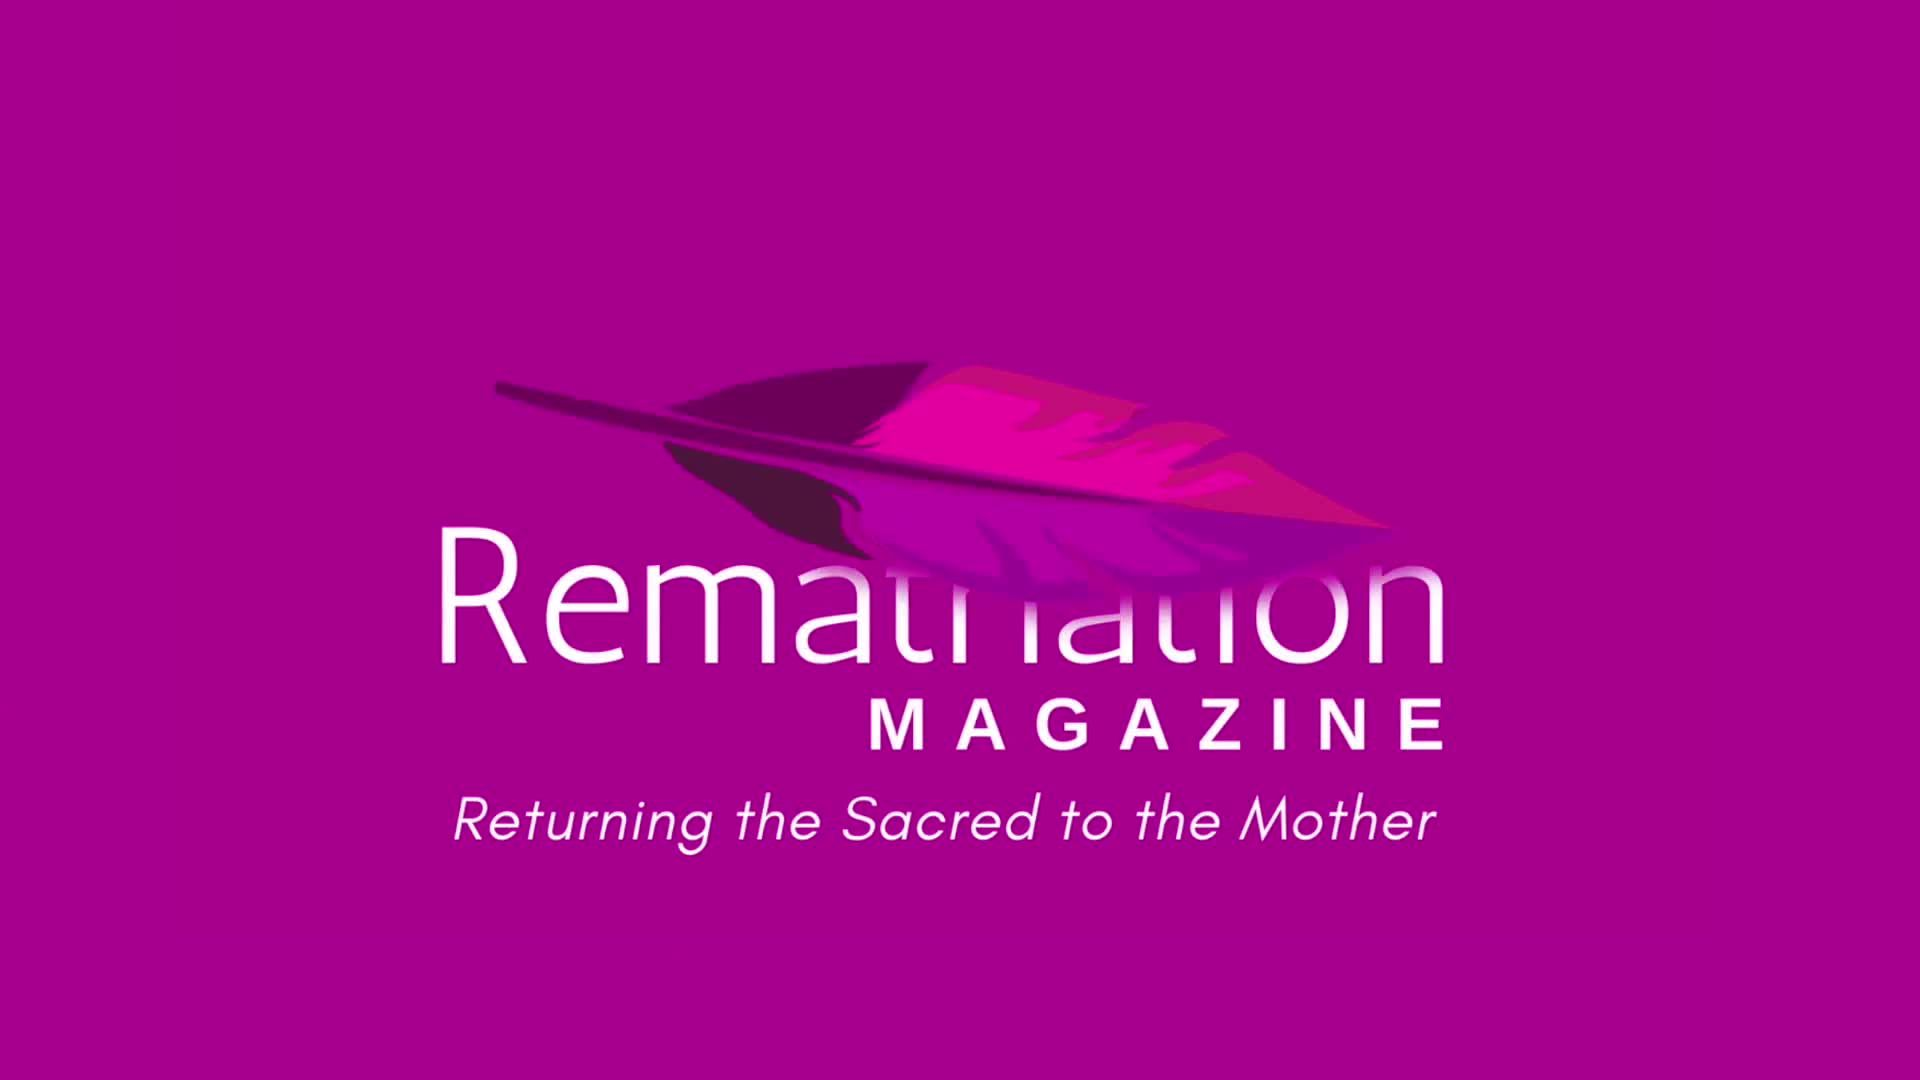 Marion Delaronde | Elevating Her Voice | Rematriation Magazine Indigenous Women's Voices